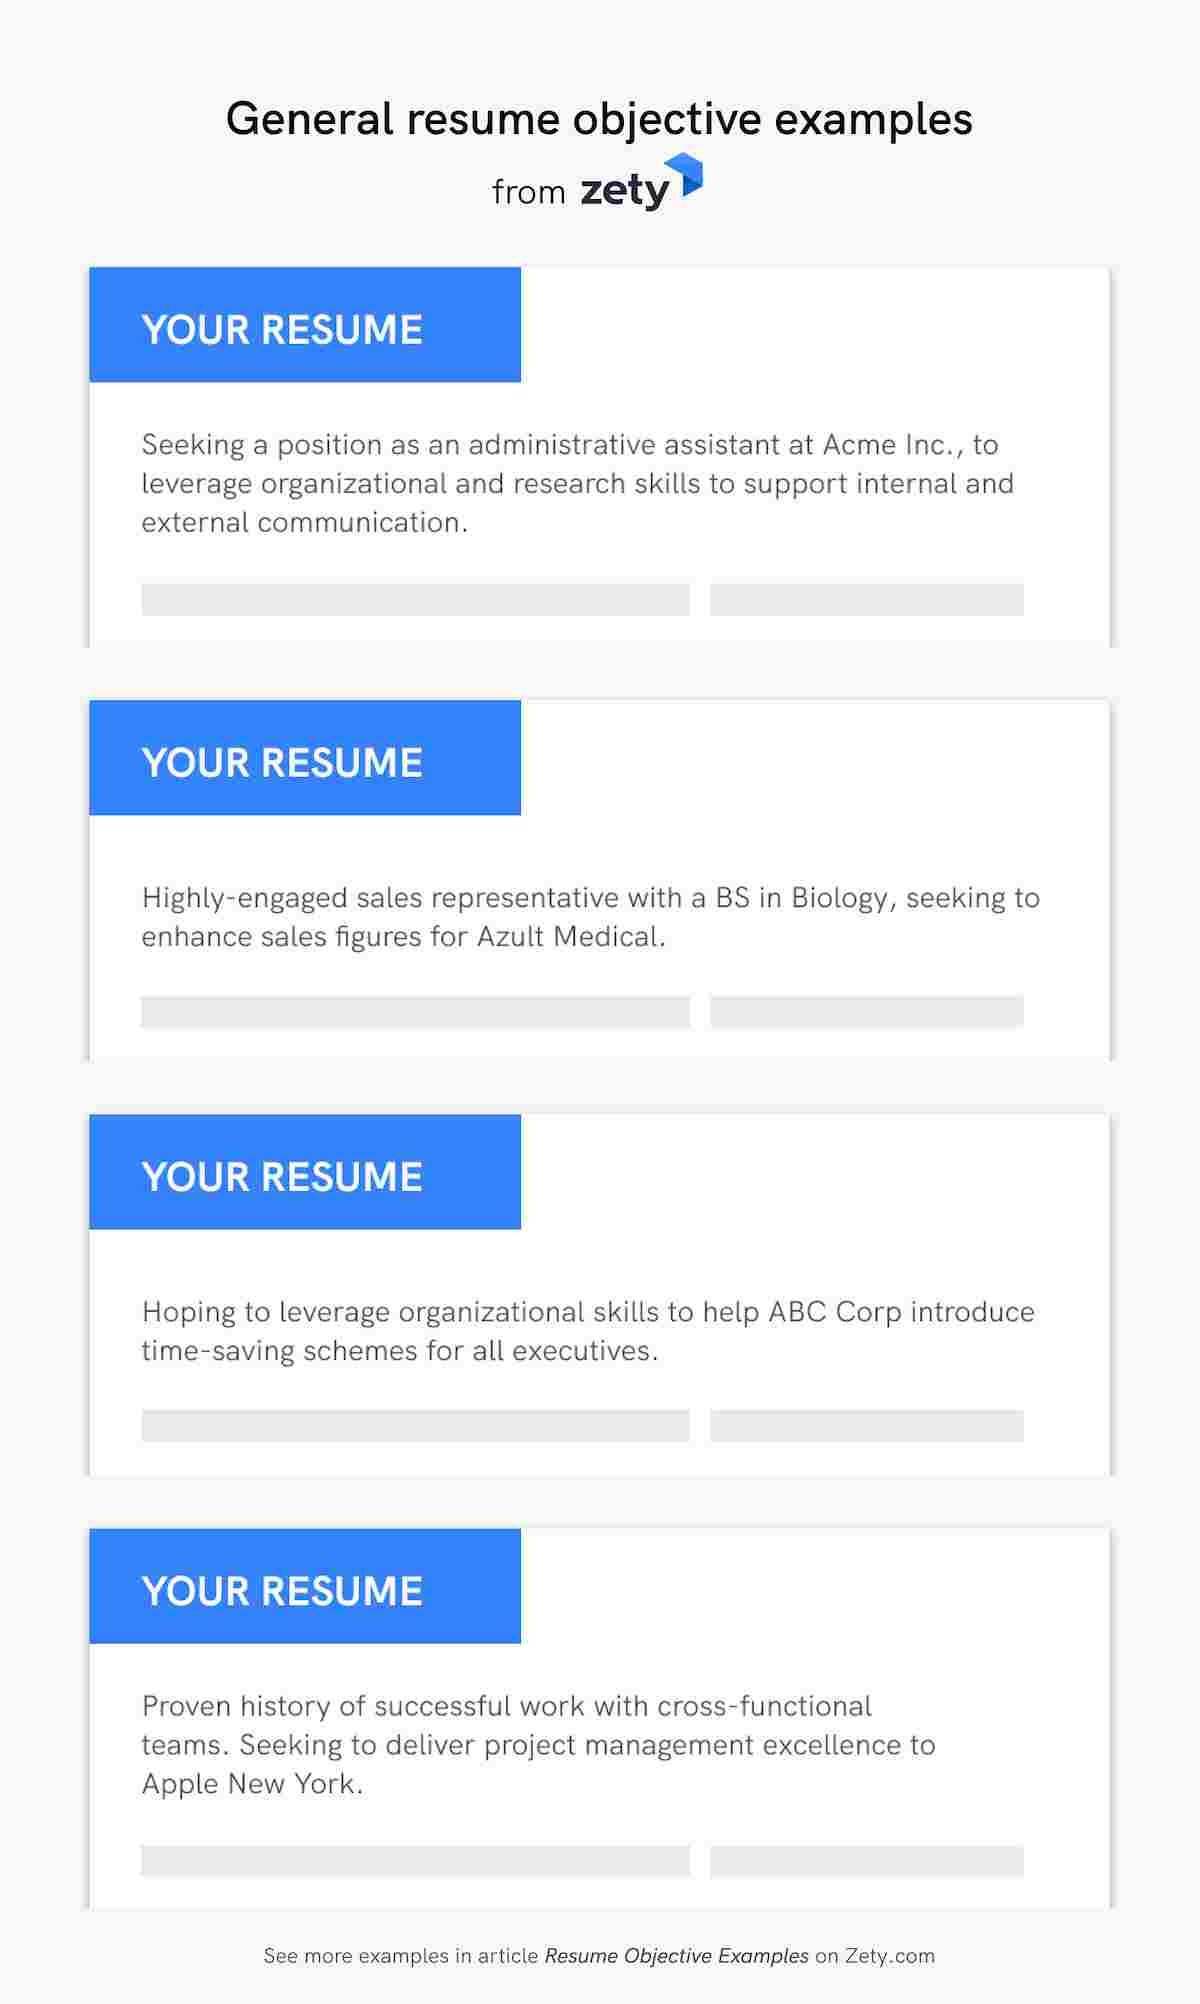 resume objective examples career objectives for all jobs seeking position general college Resume Resume Objective Seeking A Position